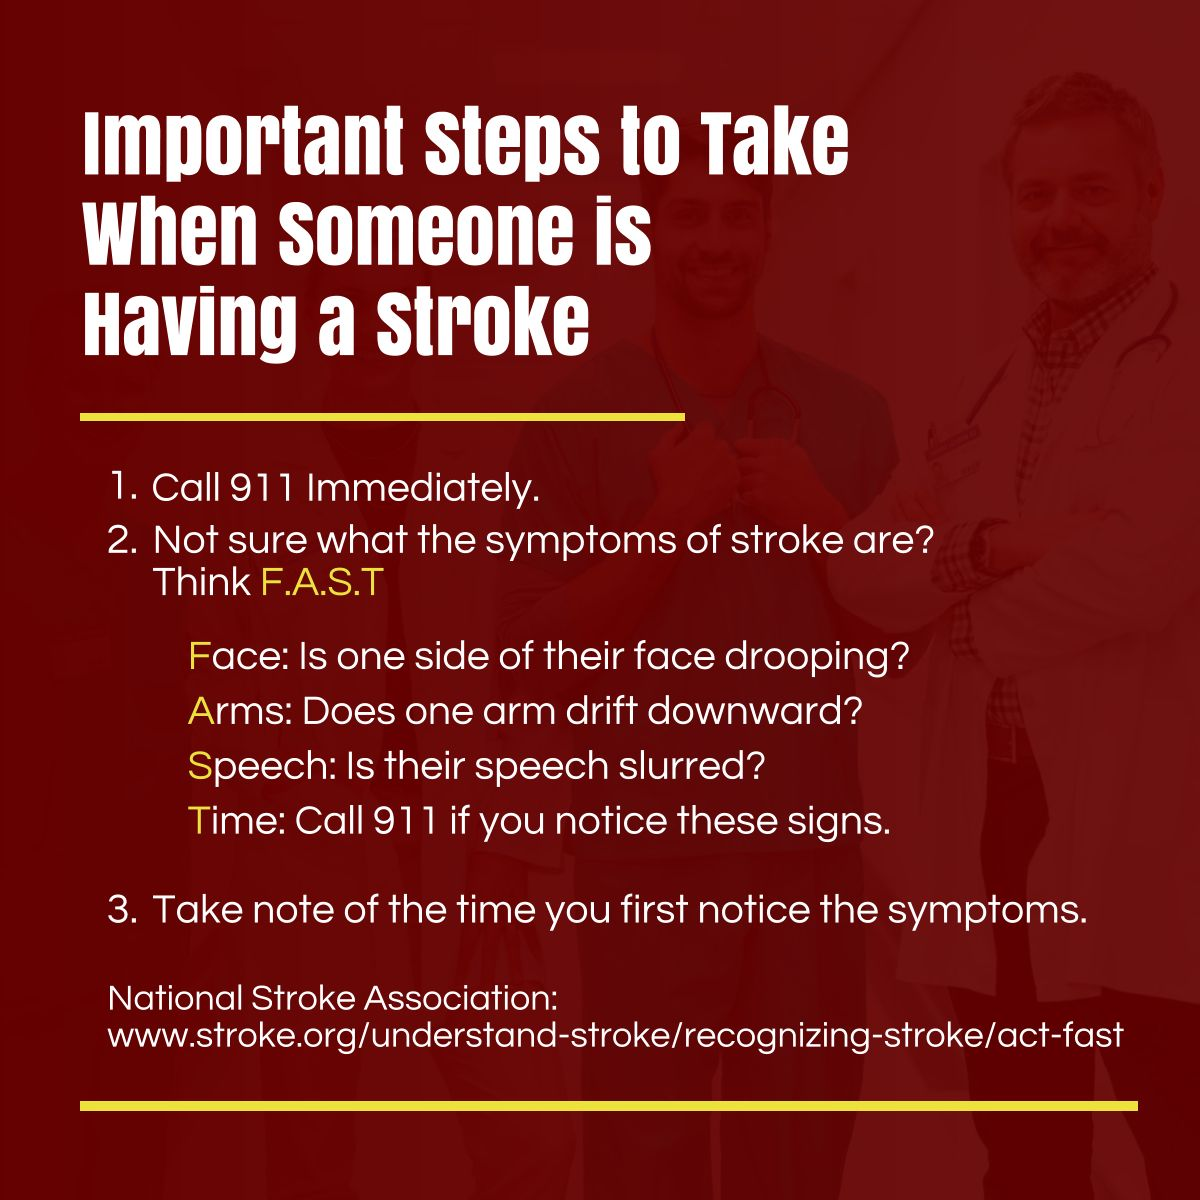 Important Steps to Take When Someone is Having a Stroke